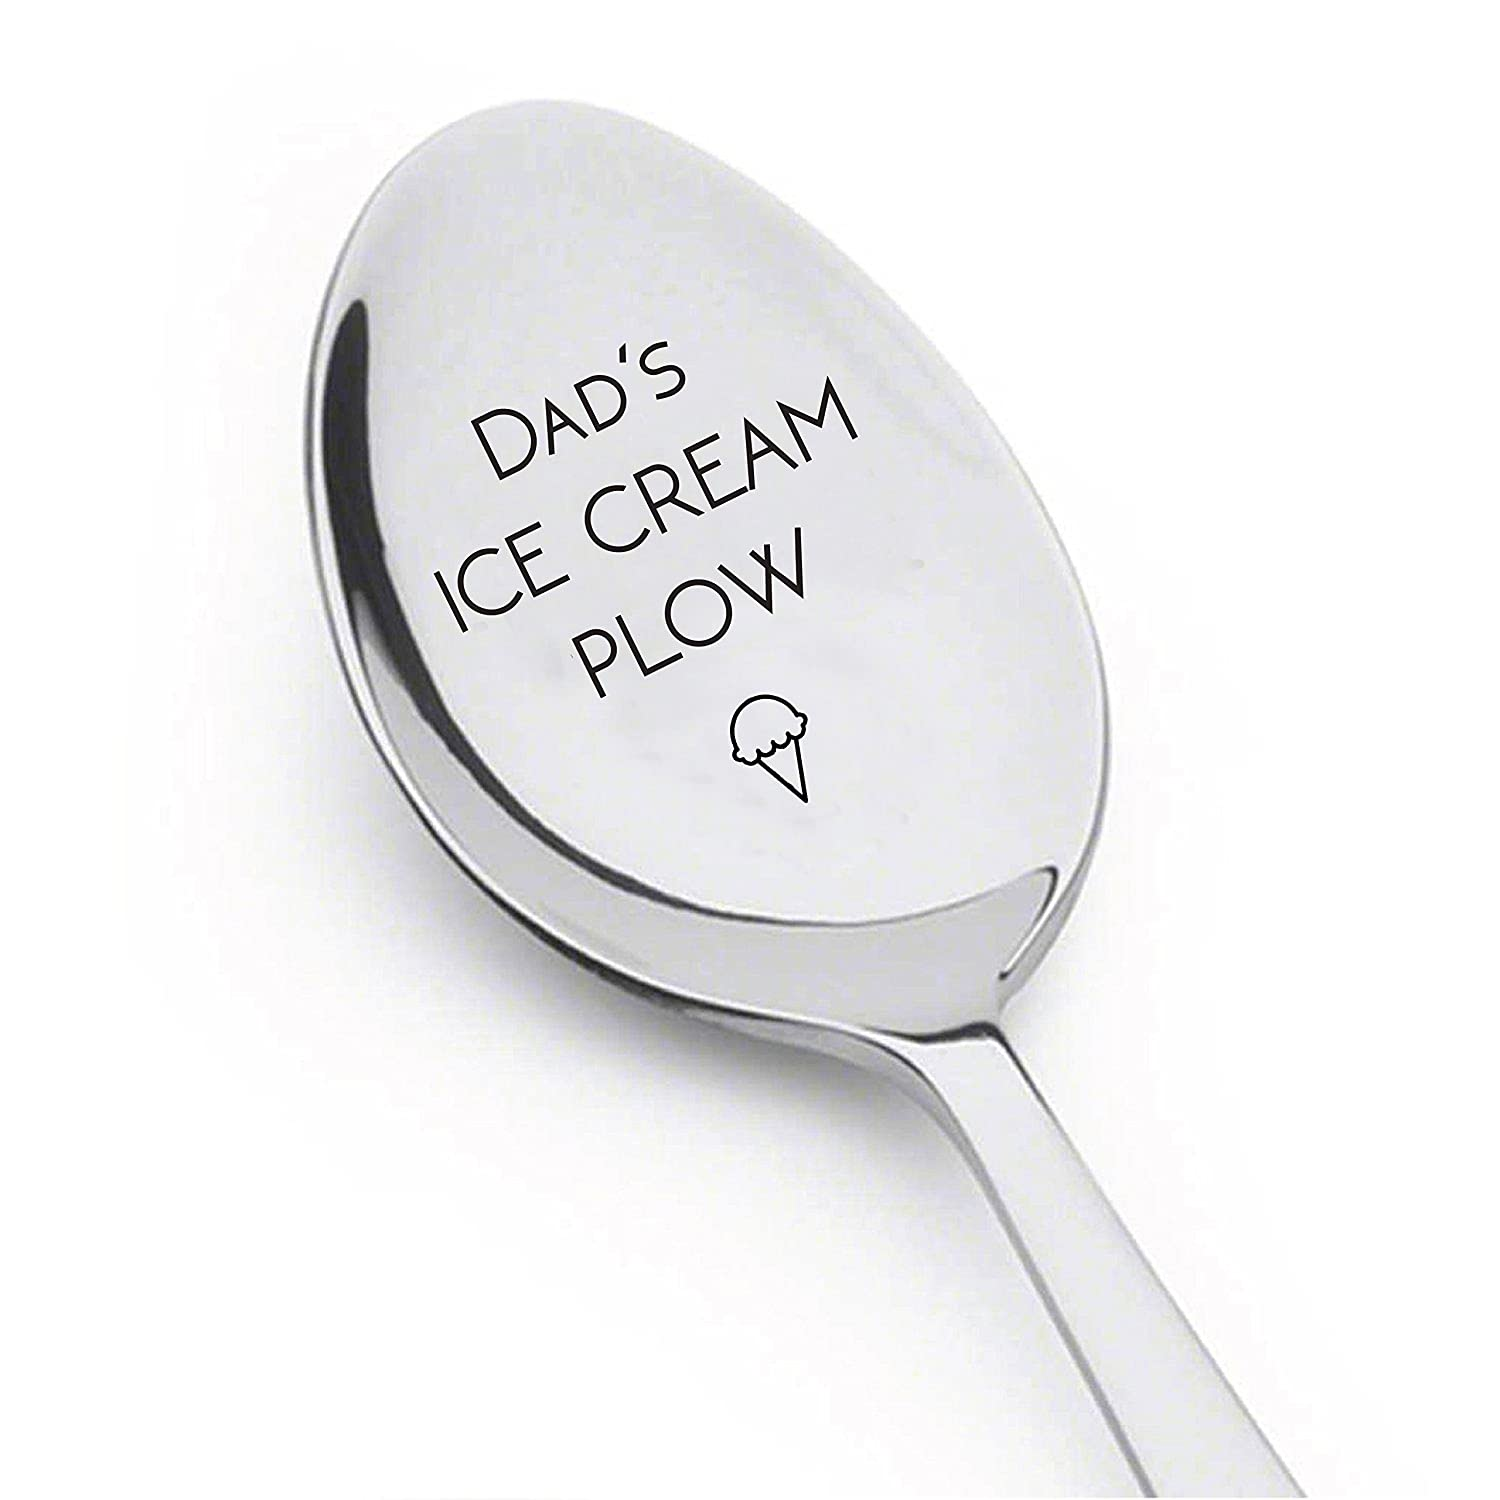 dads ice cream spoon